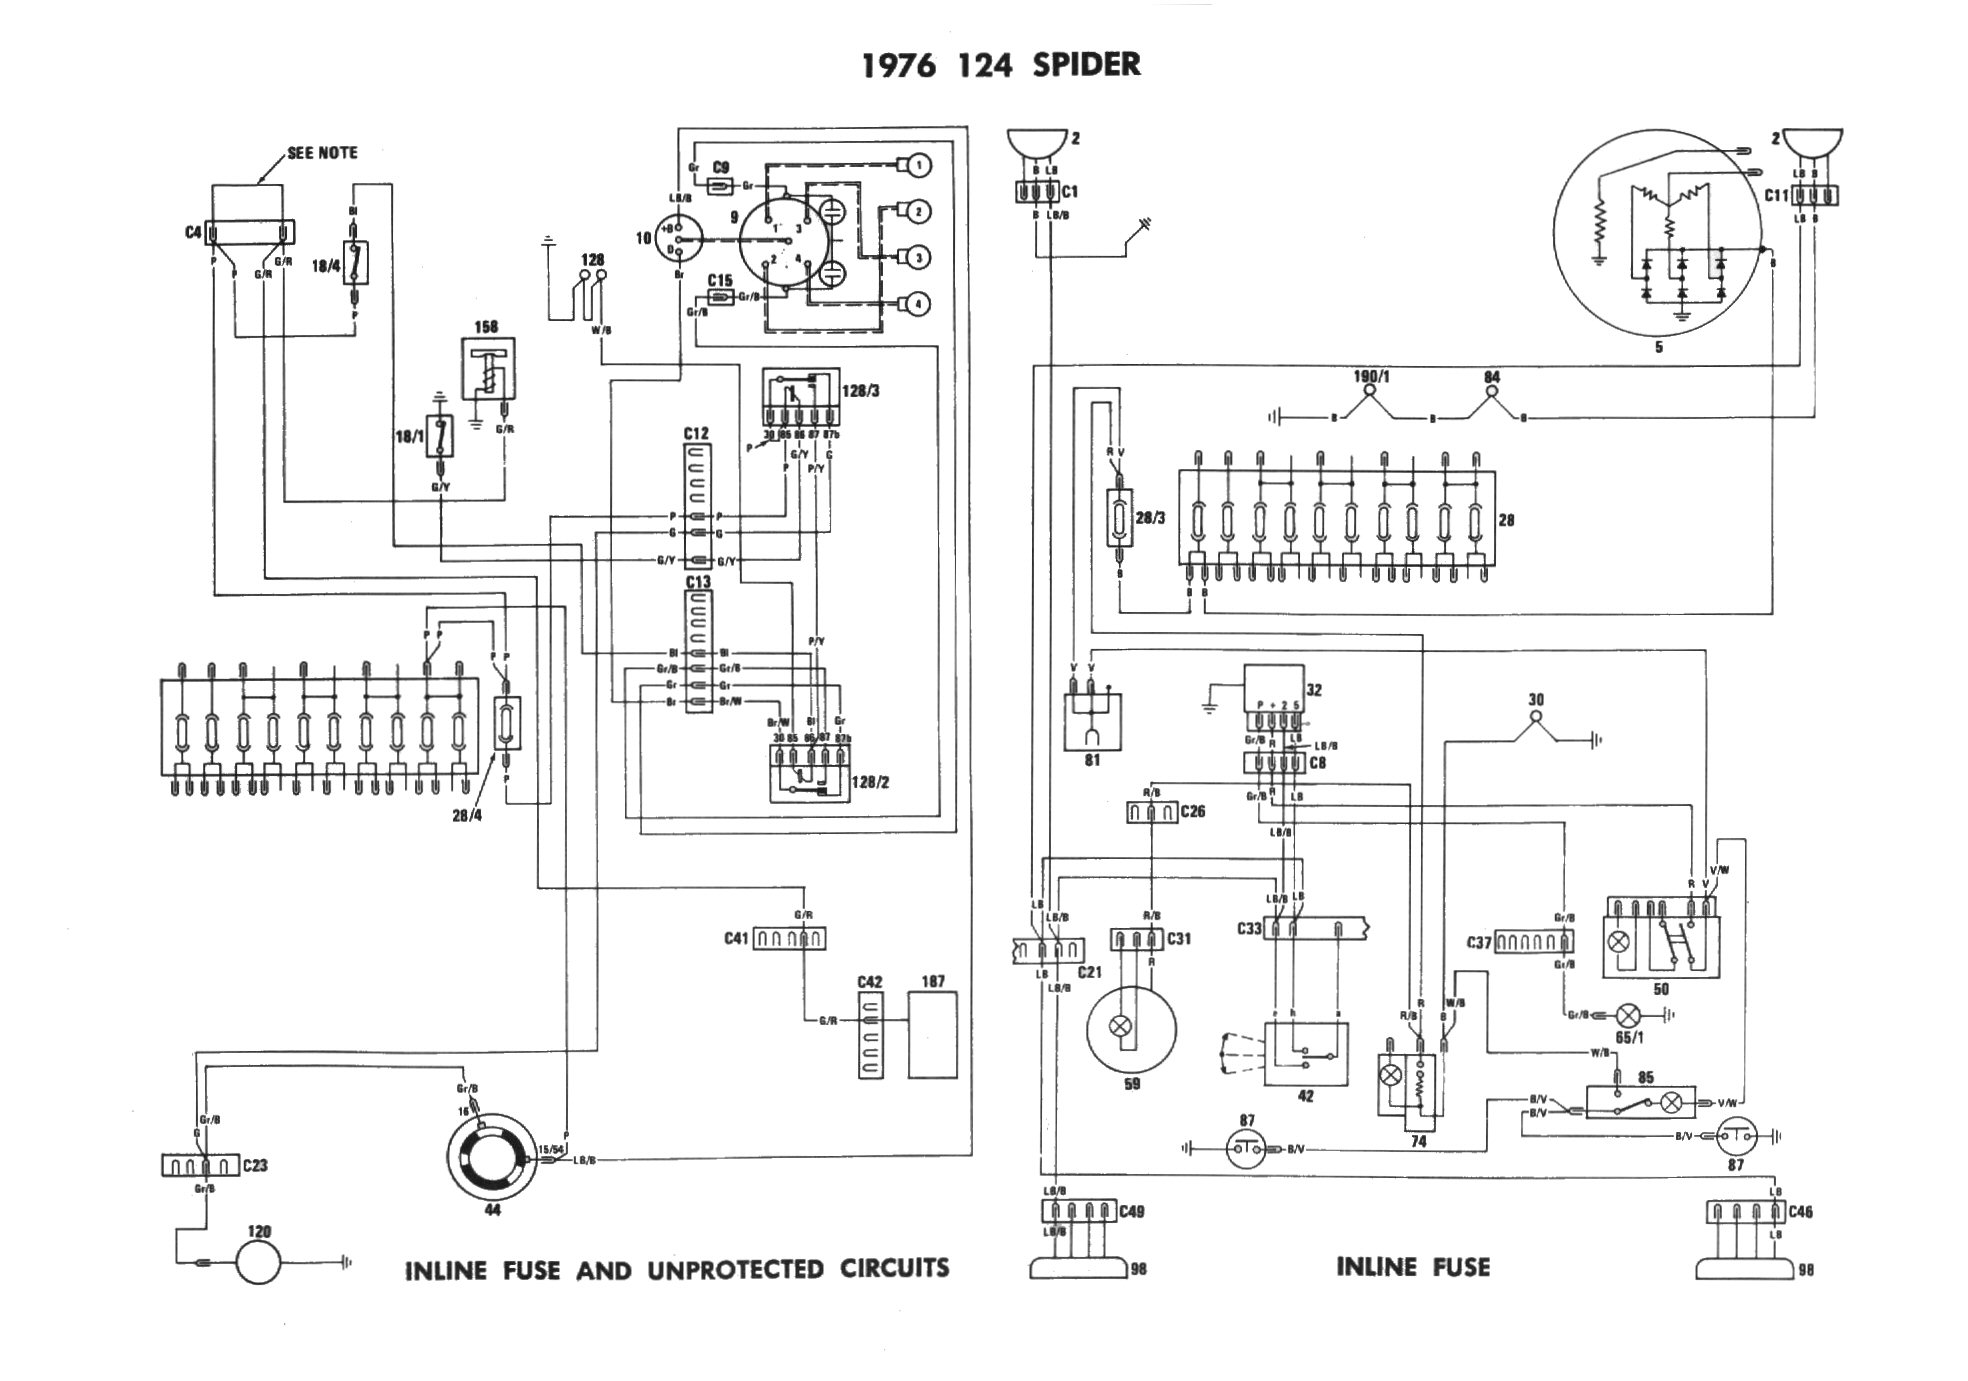 7 1976 corvette wiring diagram efcaviation com 1980 corvette wiring diagram at creativeand.co